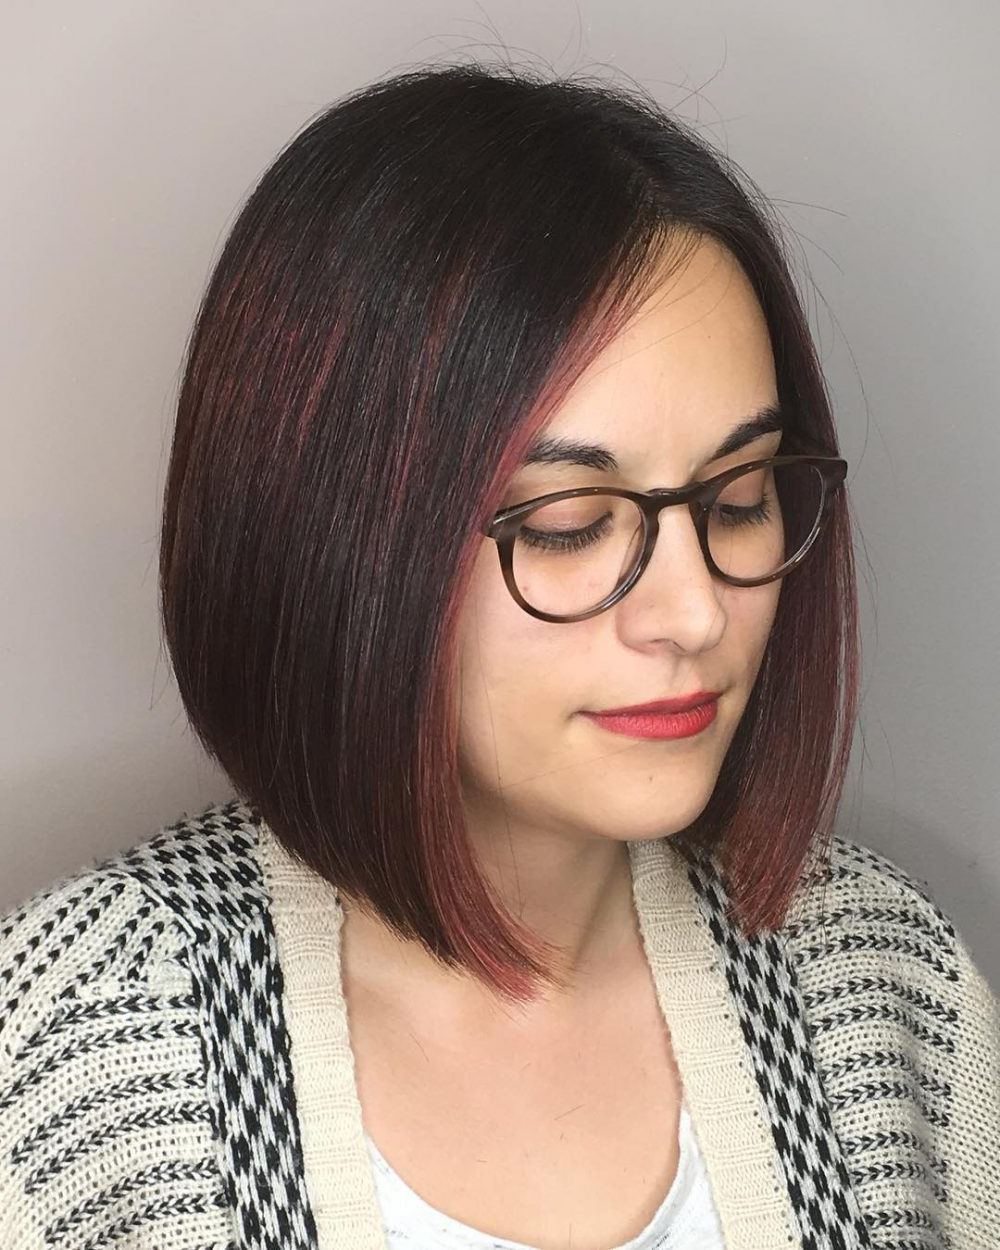 28 Most Flattering Bob Haircuts For Round Faces In 2019 Intended For Popular Funky Medium Haircuts For Round Faces (View 5 of 20)